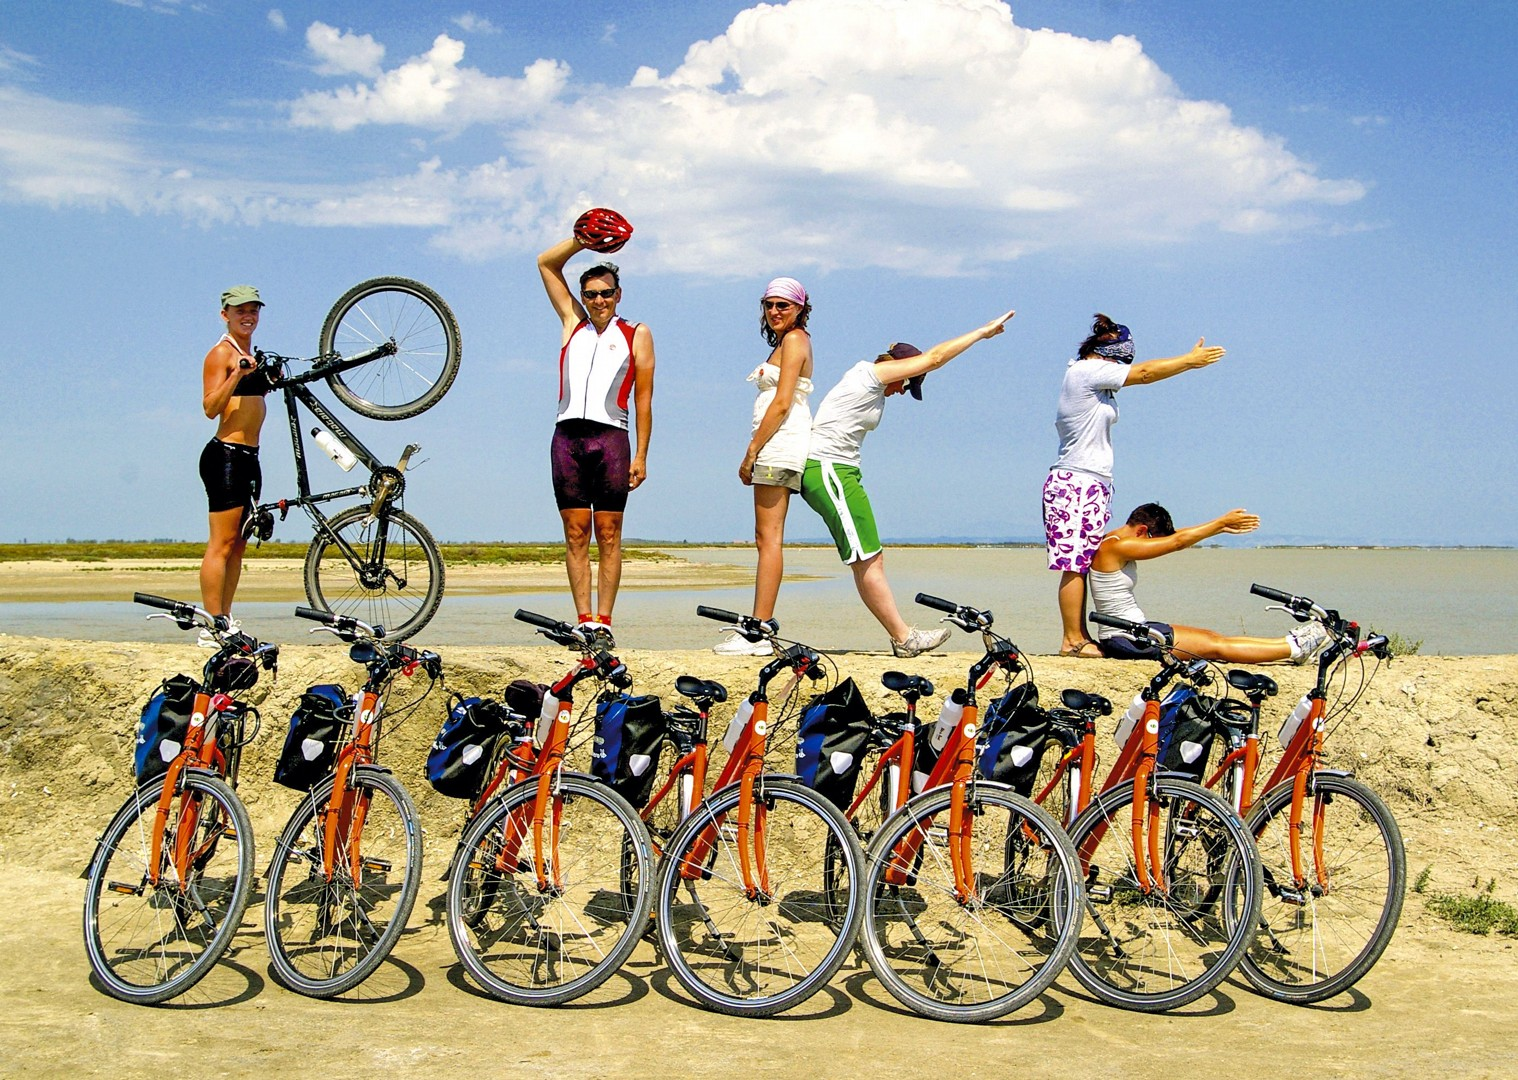 bike-high-quality-cycling-tour-bike-and-boat-france-group-tour.jpg - France - Provence - Aigues-Mortes to Avignon - Bike and Barge Holiday - Leisure Cycling